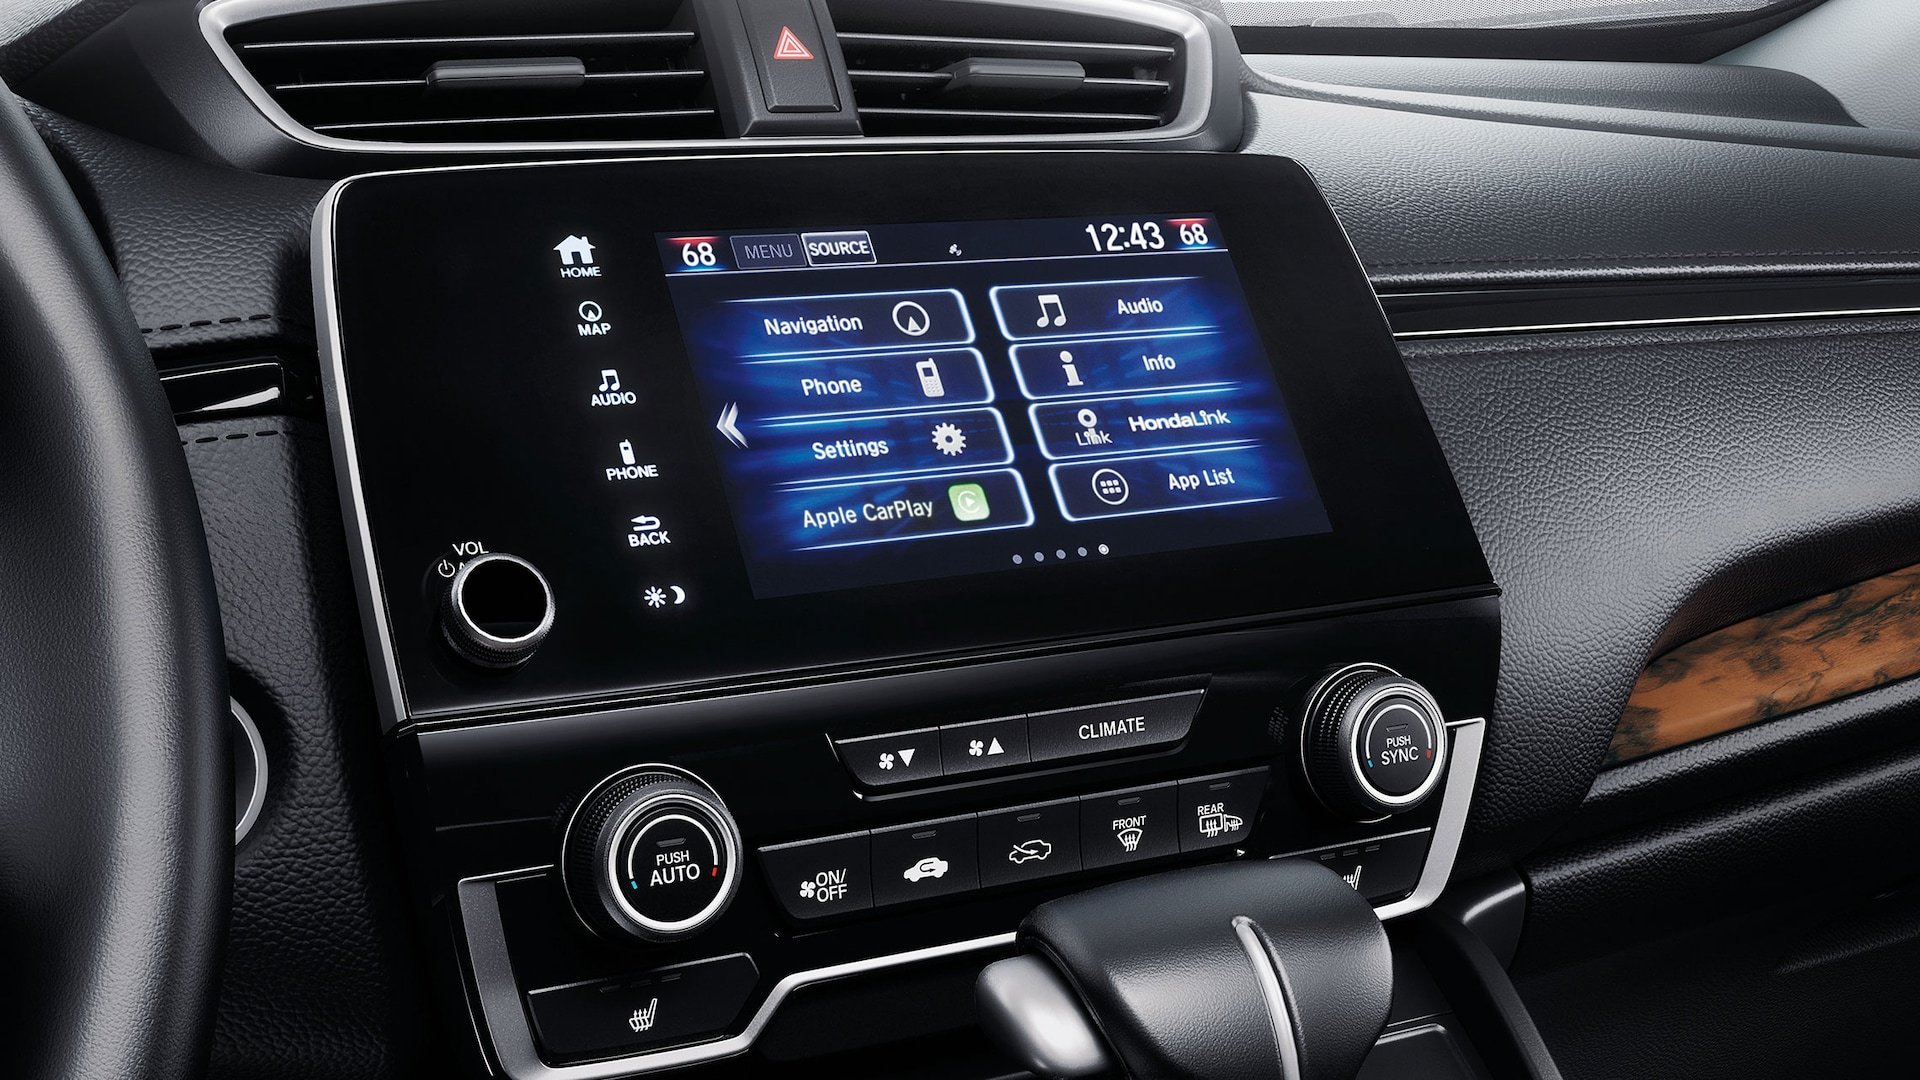 7-inch Display Audio touch-screen detail in the 2020 Honda CR-V.